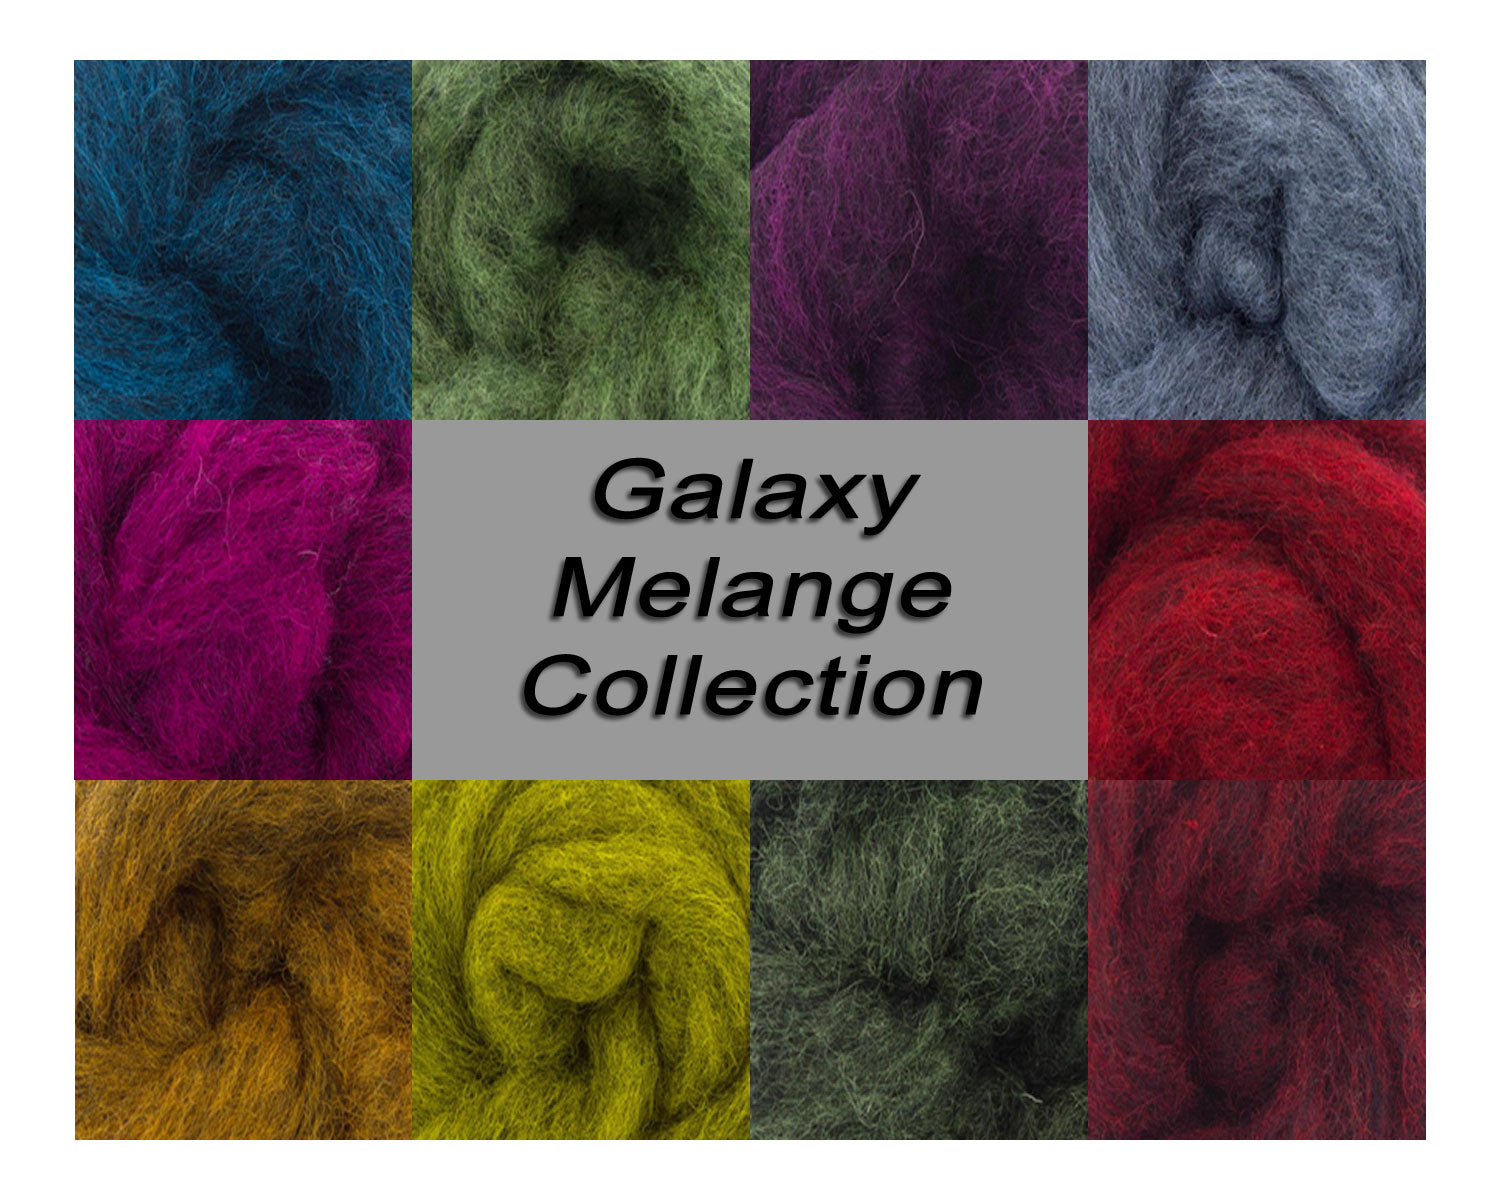 Galaxy Melange Collection